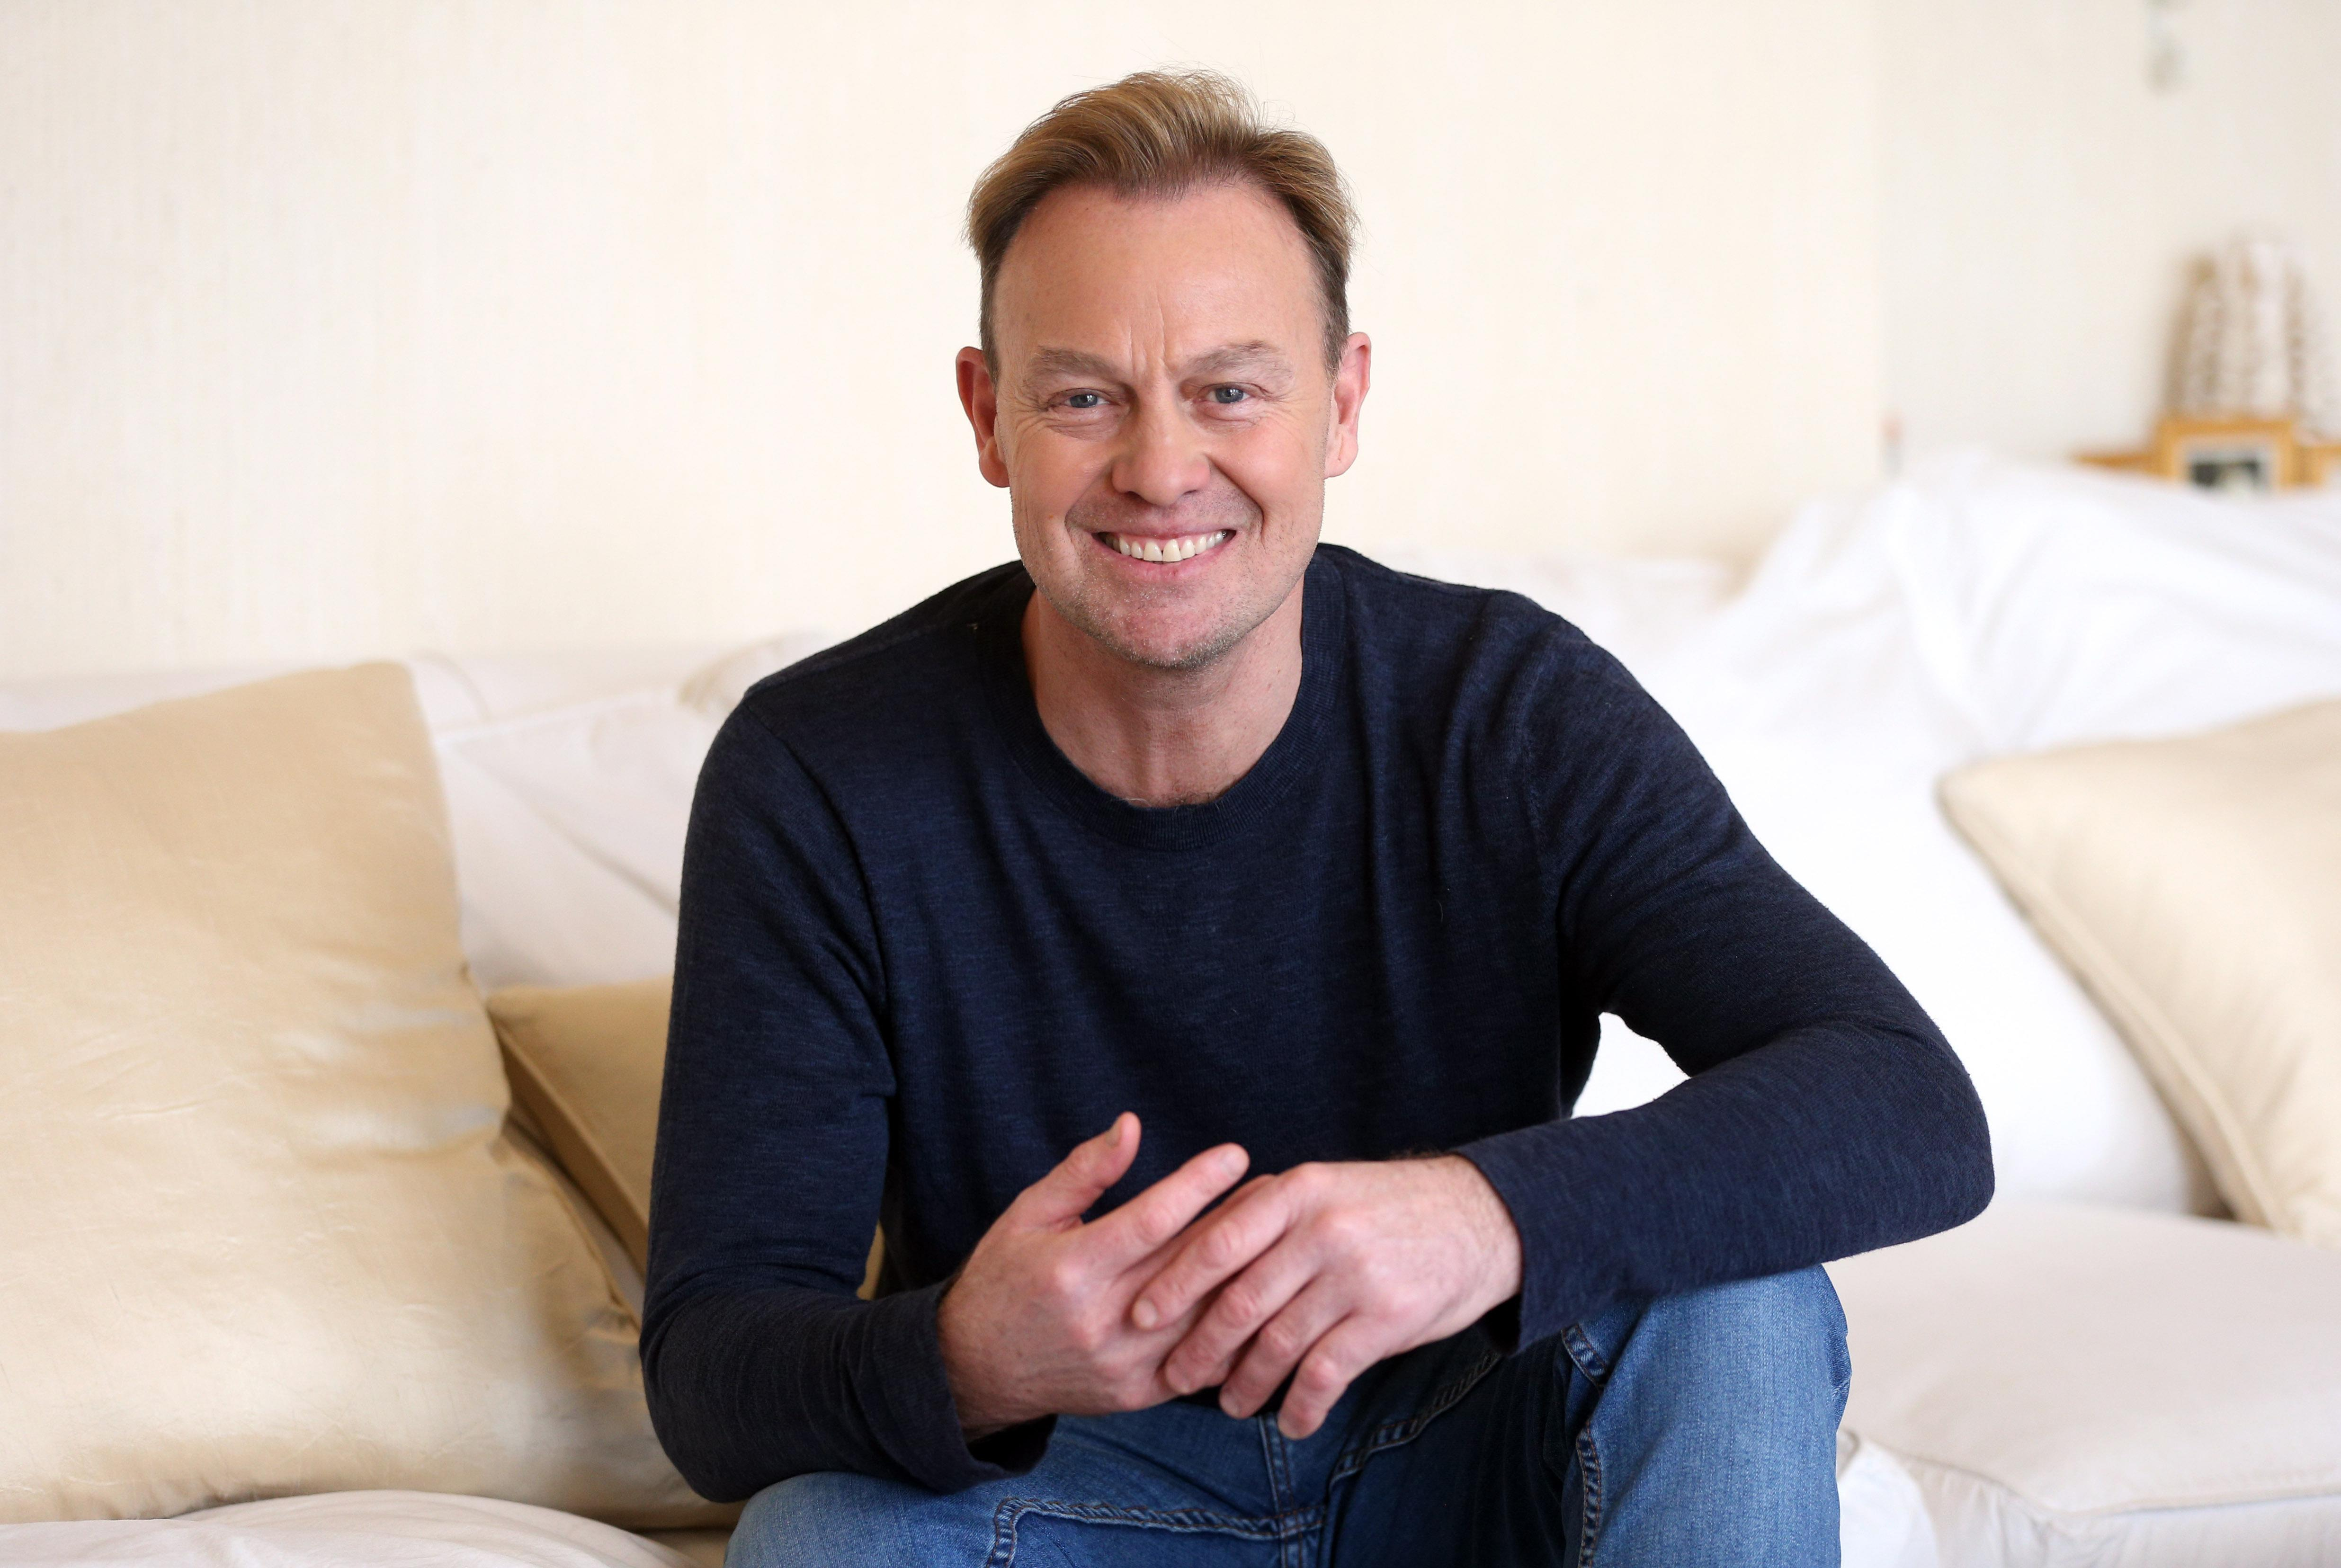 Jason Donovan confirmed for 'Dancing On Ice'